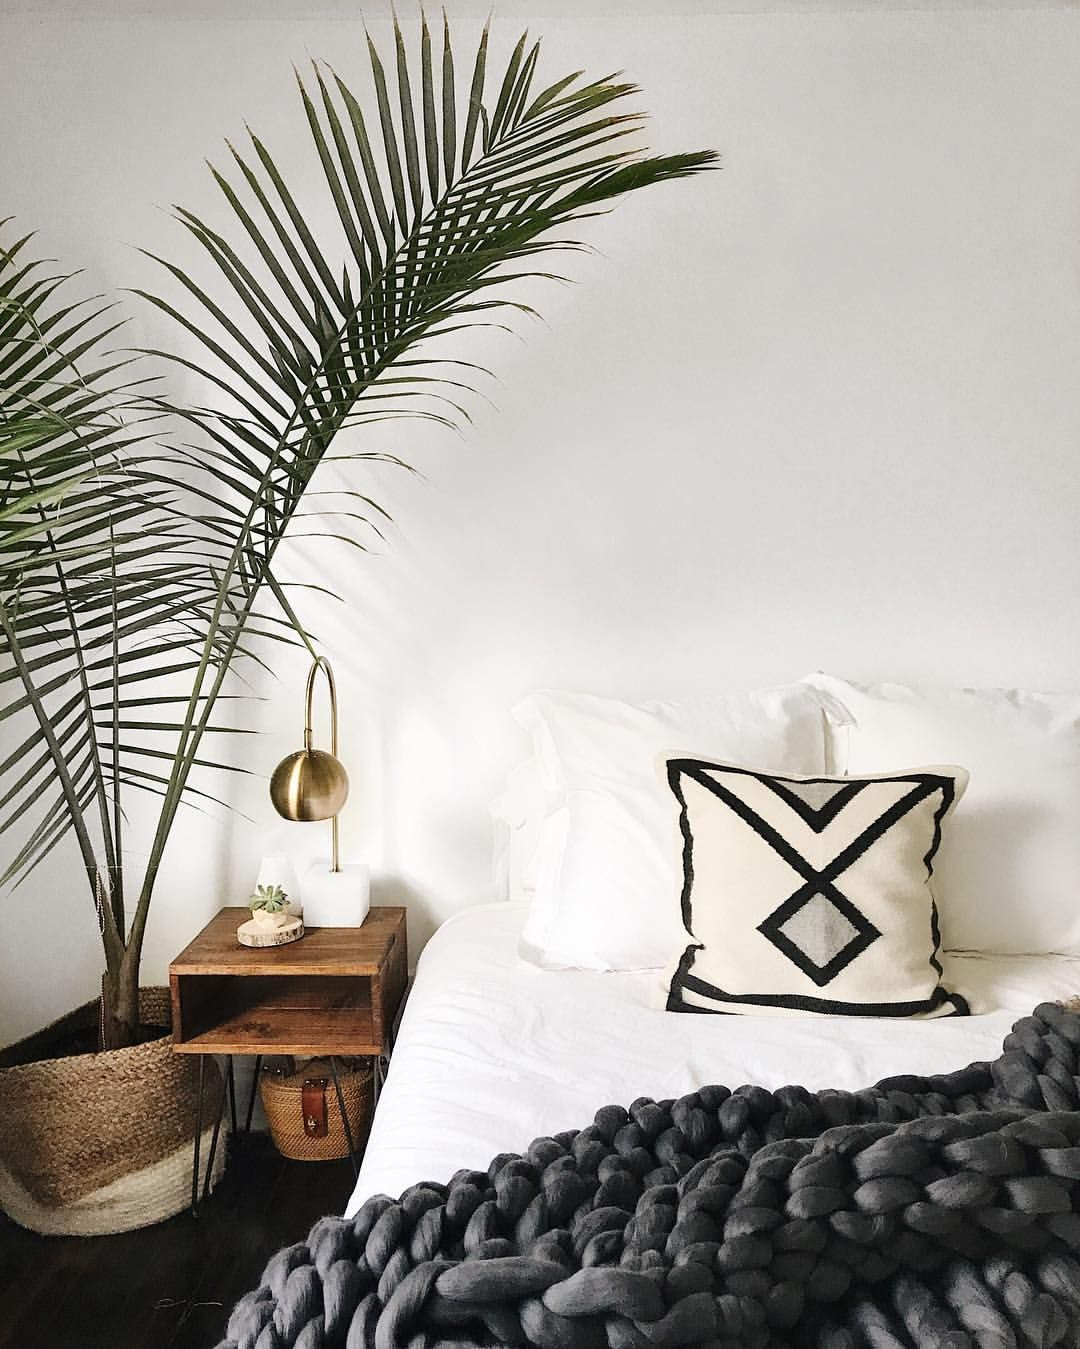 large plant, white walls, gold lamp, white sheets, large knit grey